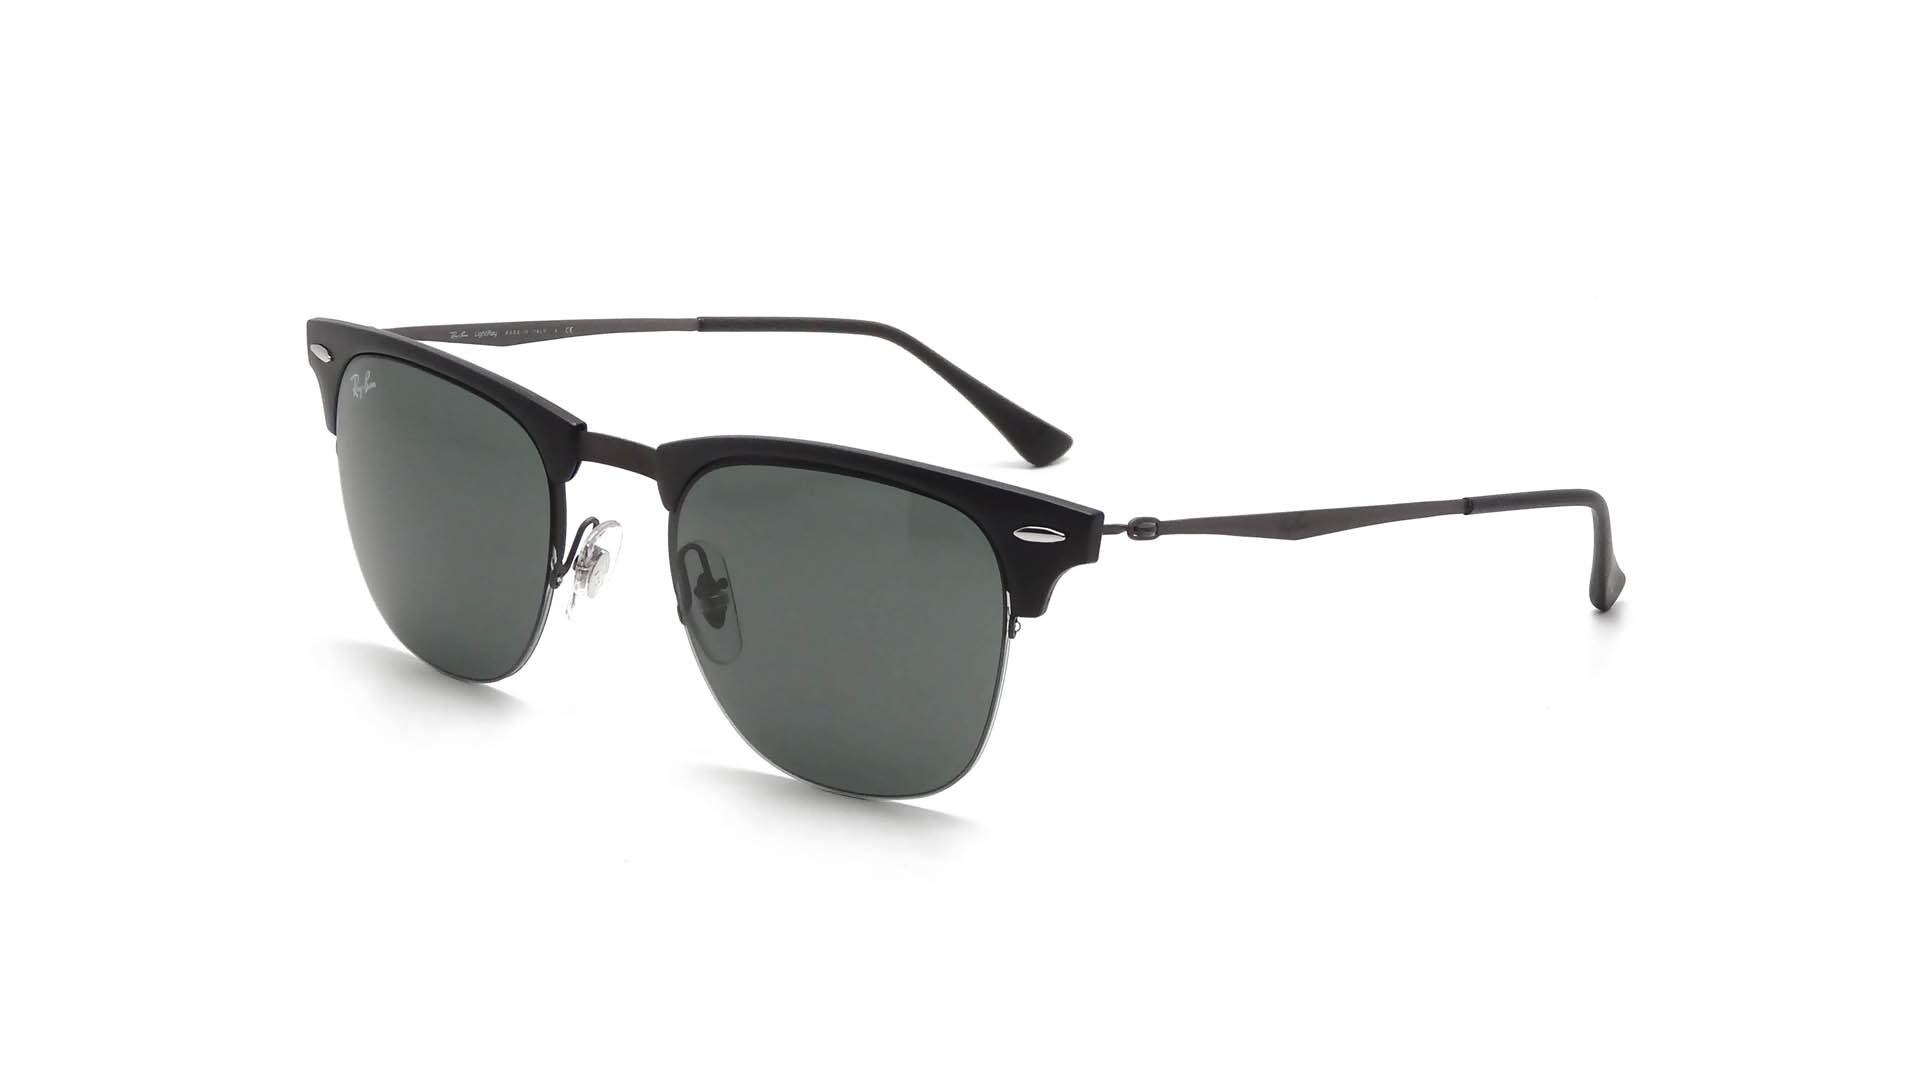 aaa7a5d81f3 canada ray ban rb3362 sunglasses gunmetal frame crystal green gradient lens  f96c9 1dd4c  norway ray ban clubmaster light ray black rb8056 154 71 51 22  ...